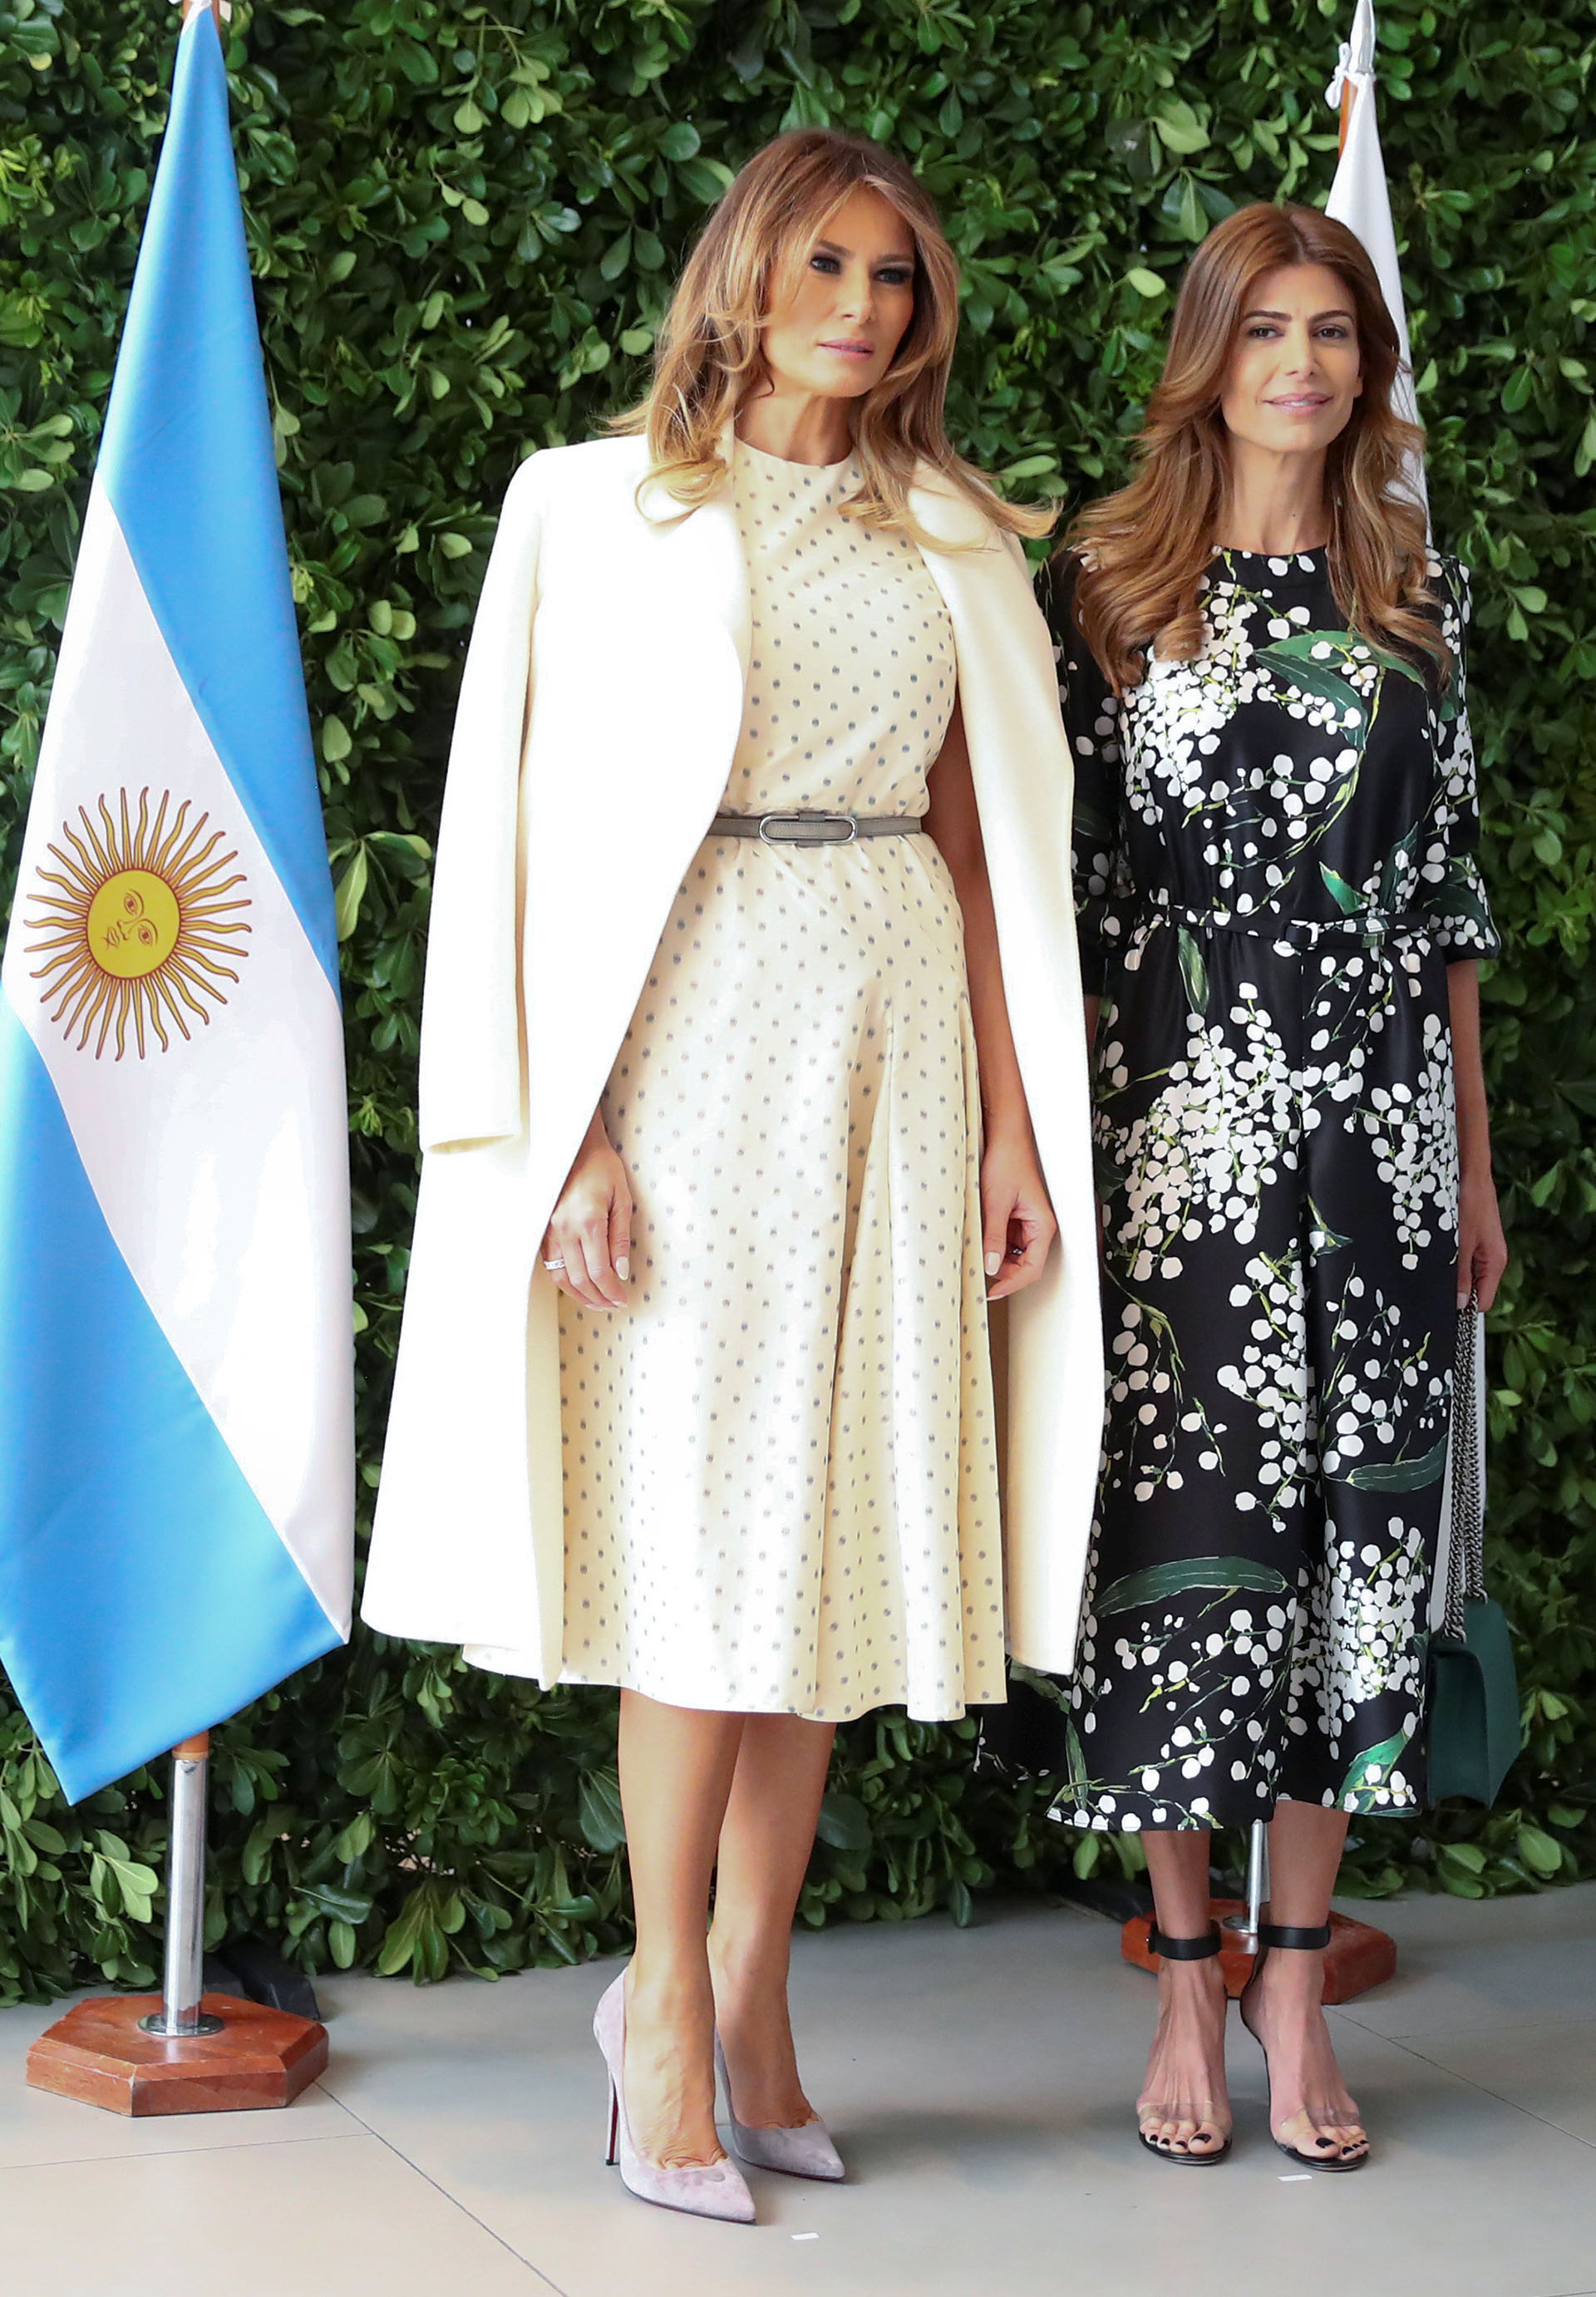 Juliana Awada y Melania Trump